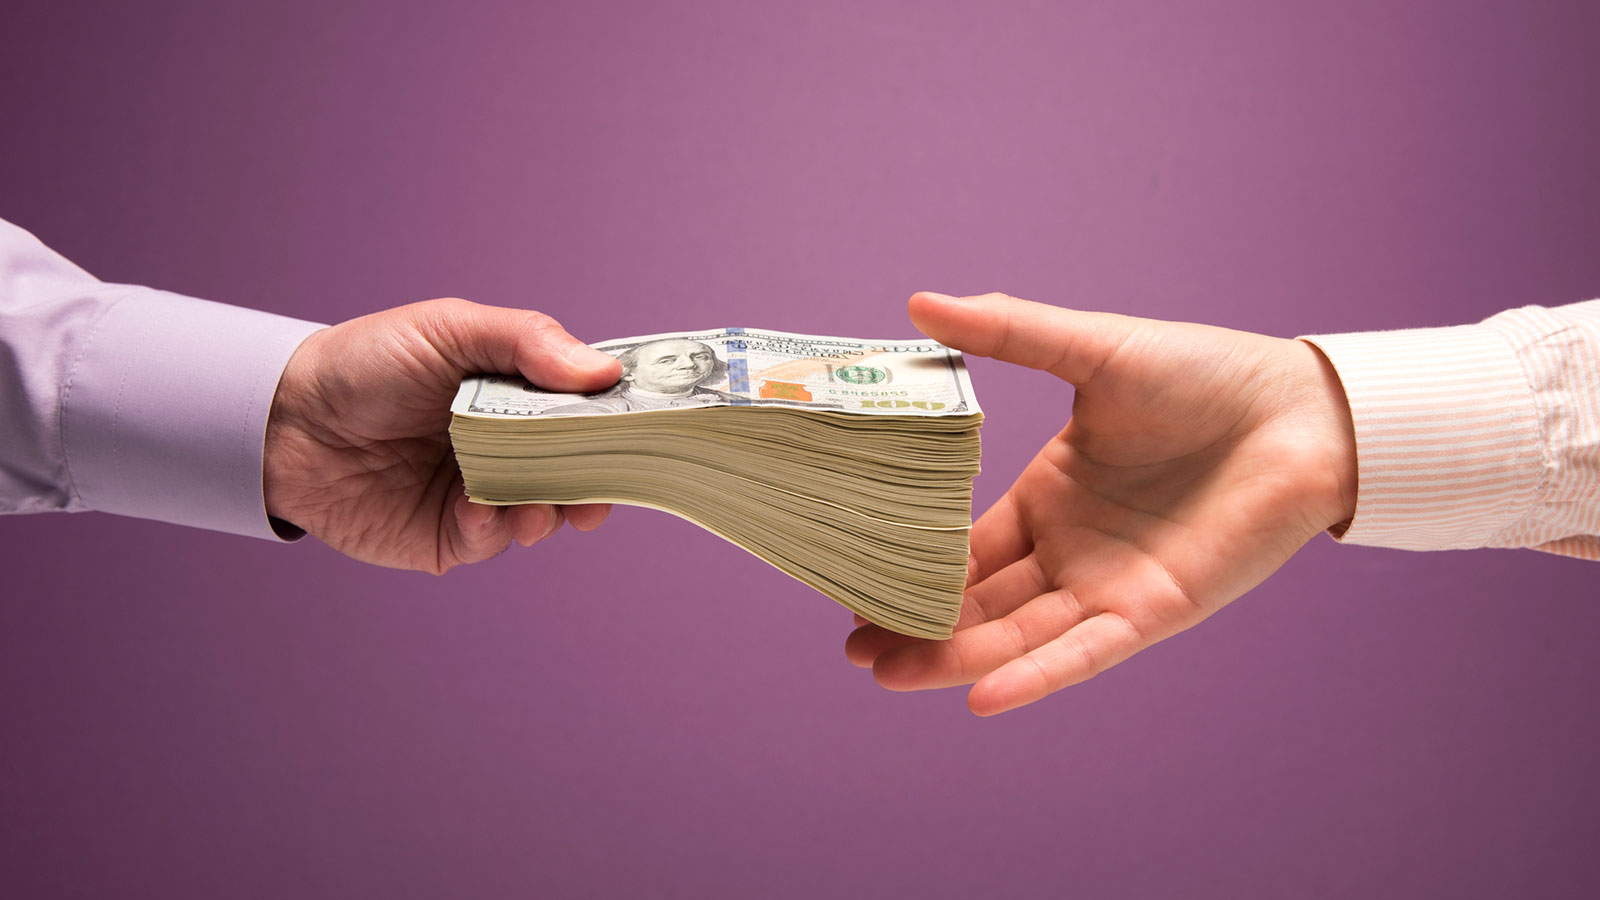 Payday Loans without a Bank Account | HowStuffWorks